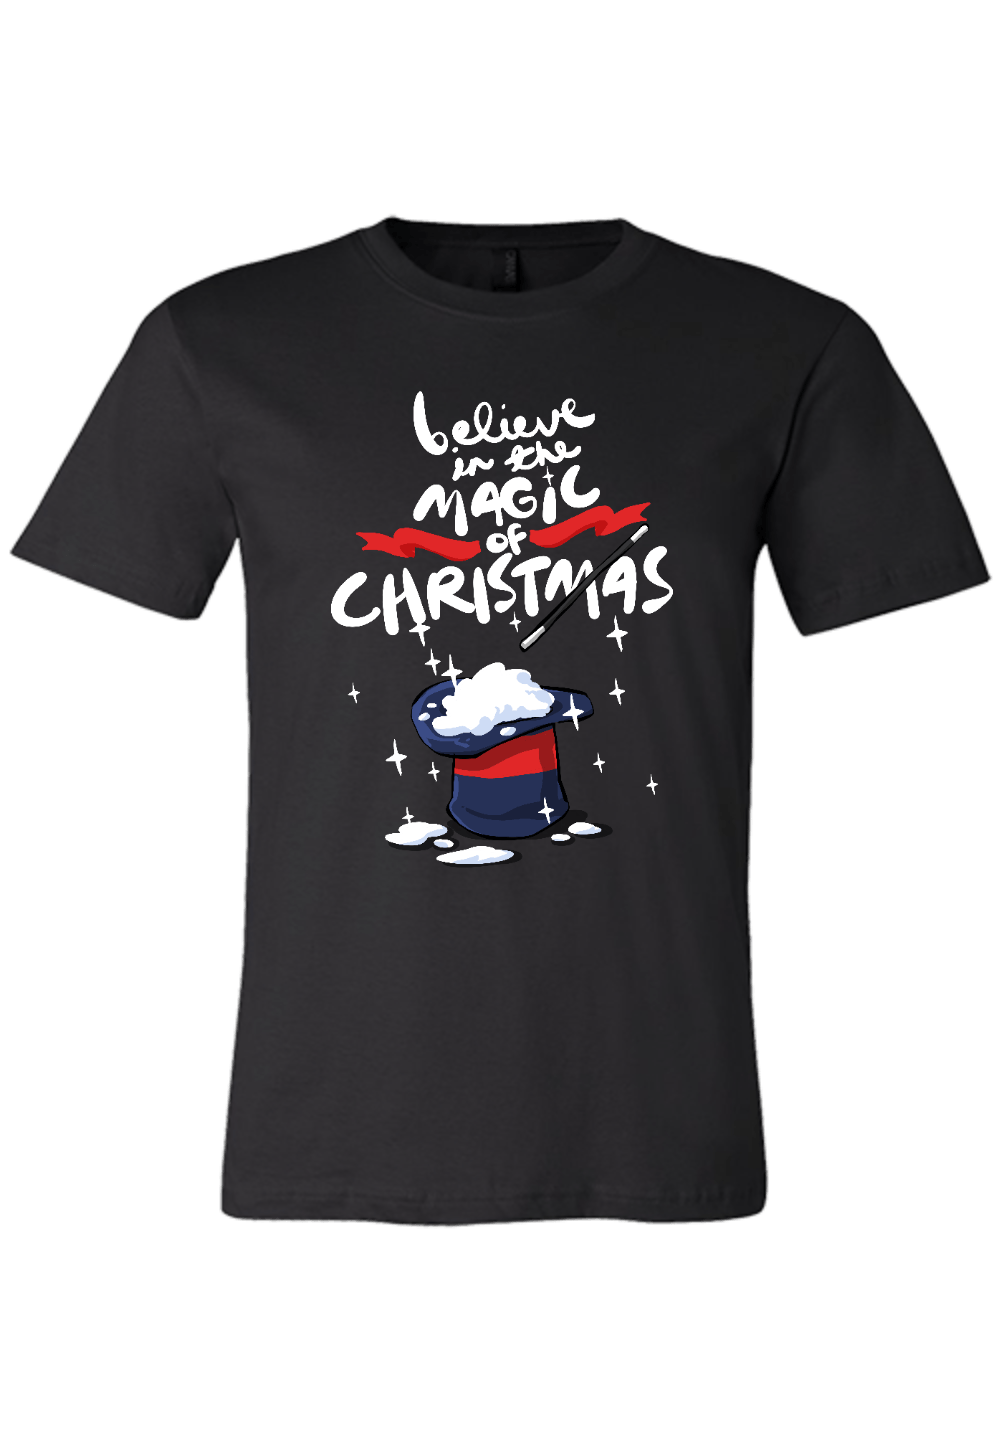 I Believe in the Magic of Christmas Shirt